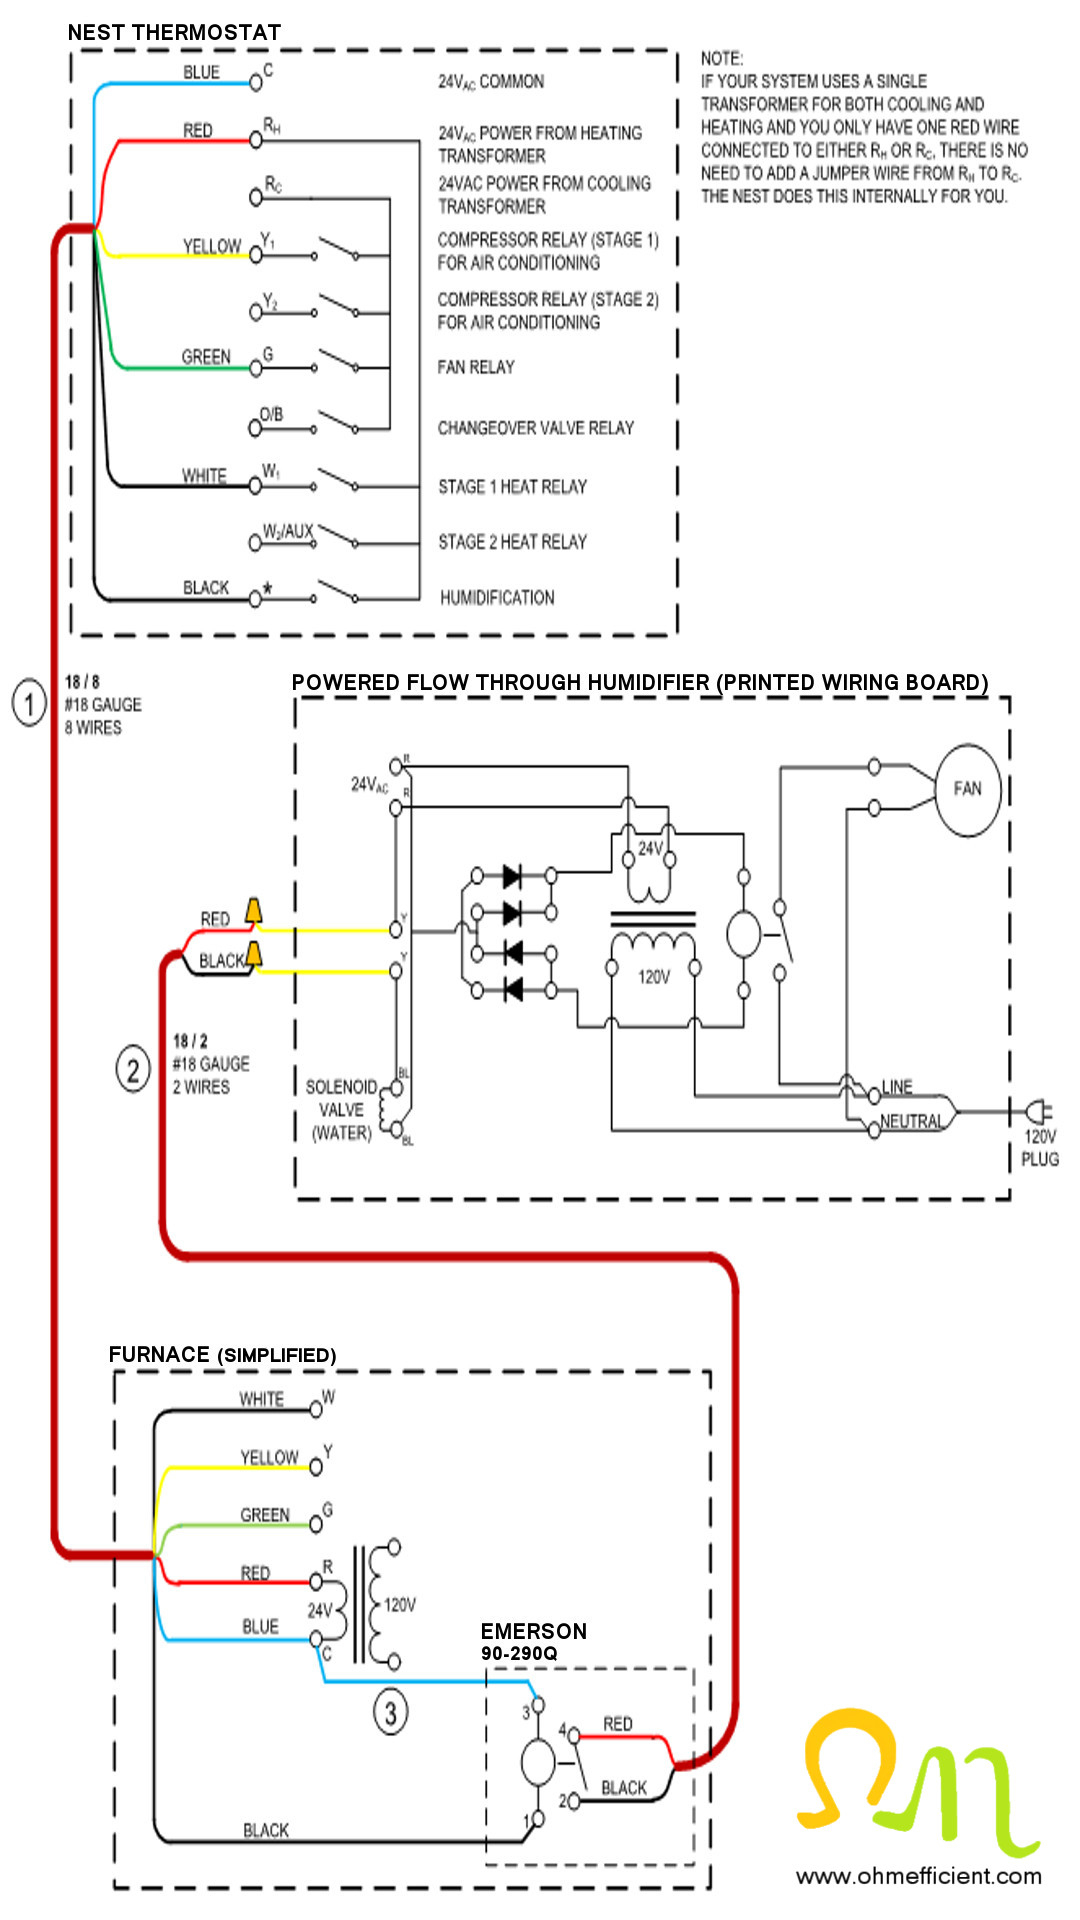 How To Connect & Setup A Nest Thermostat To Function As A Humidistat - Nest Wiring Diagram Gas Steam Heat